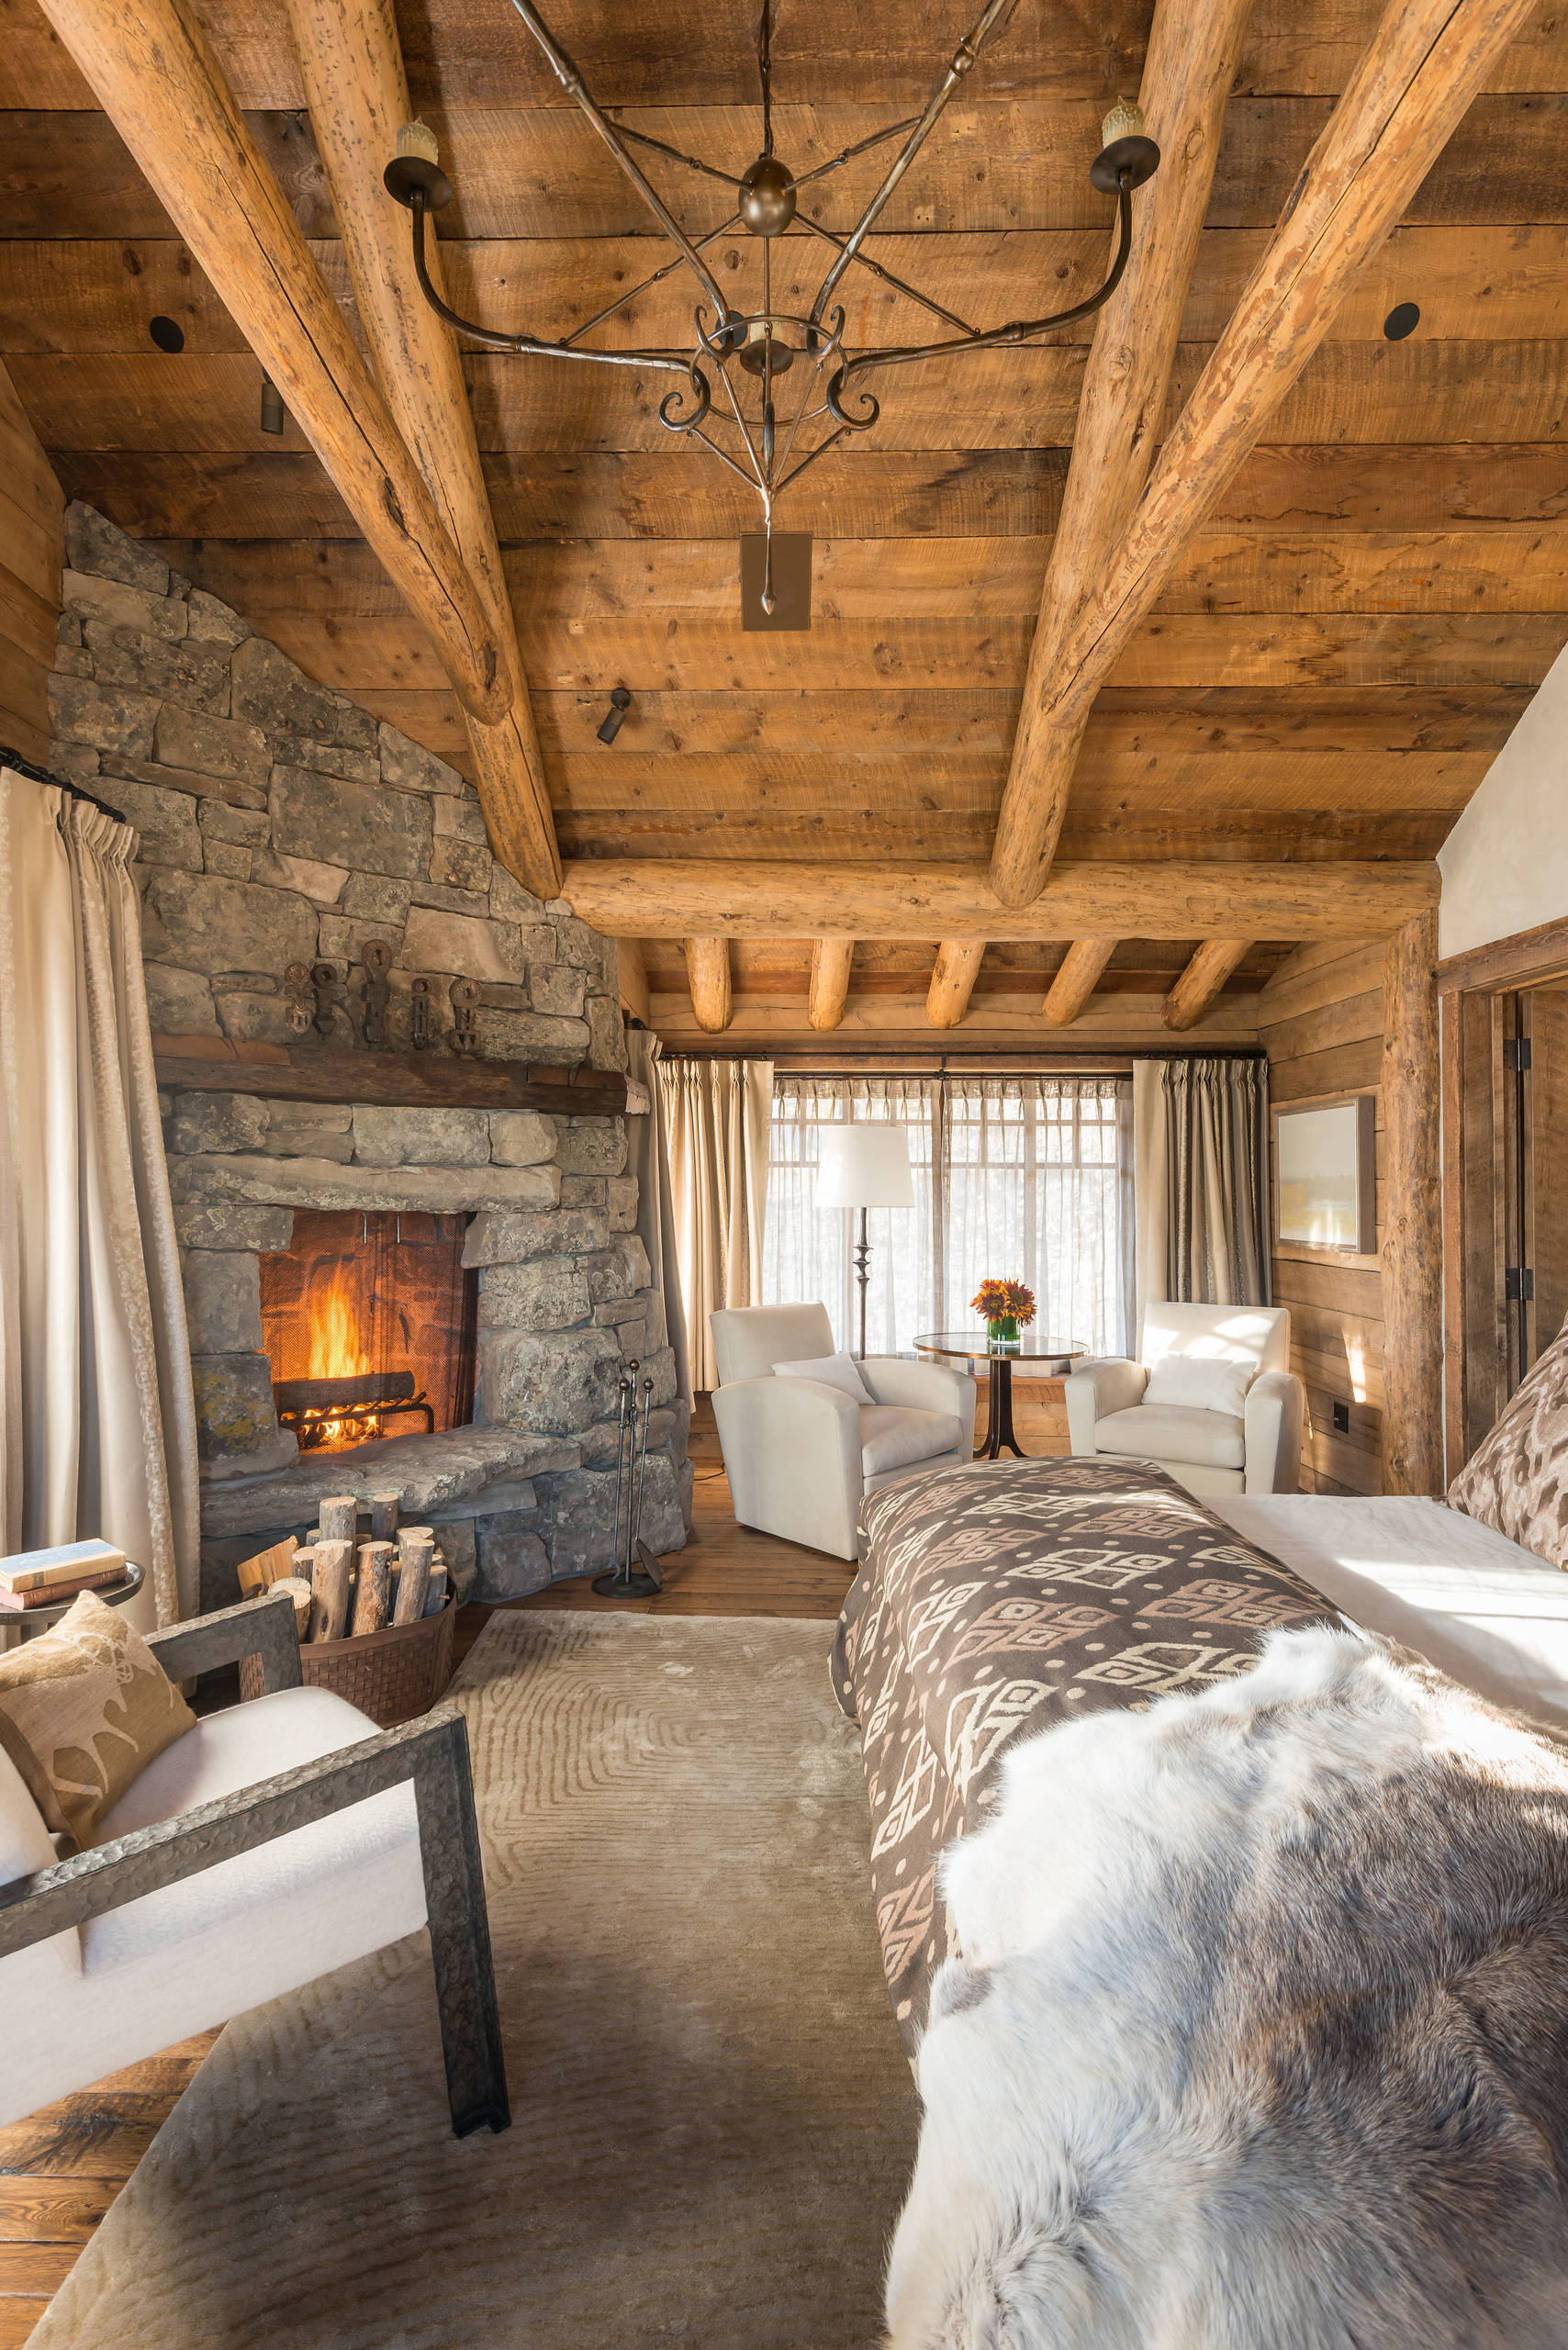 15 Wicked Rustic Bedroom Designs That Will Make You Want Them on Room Ideas For Small Rooms  id=41391